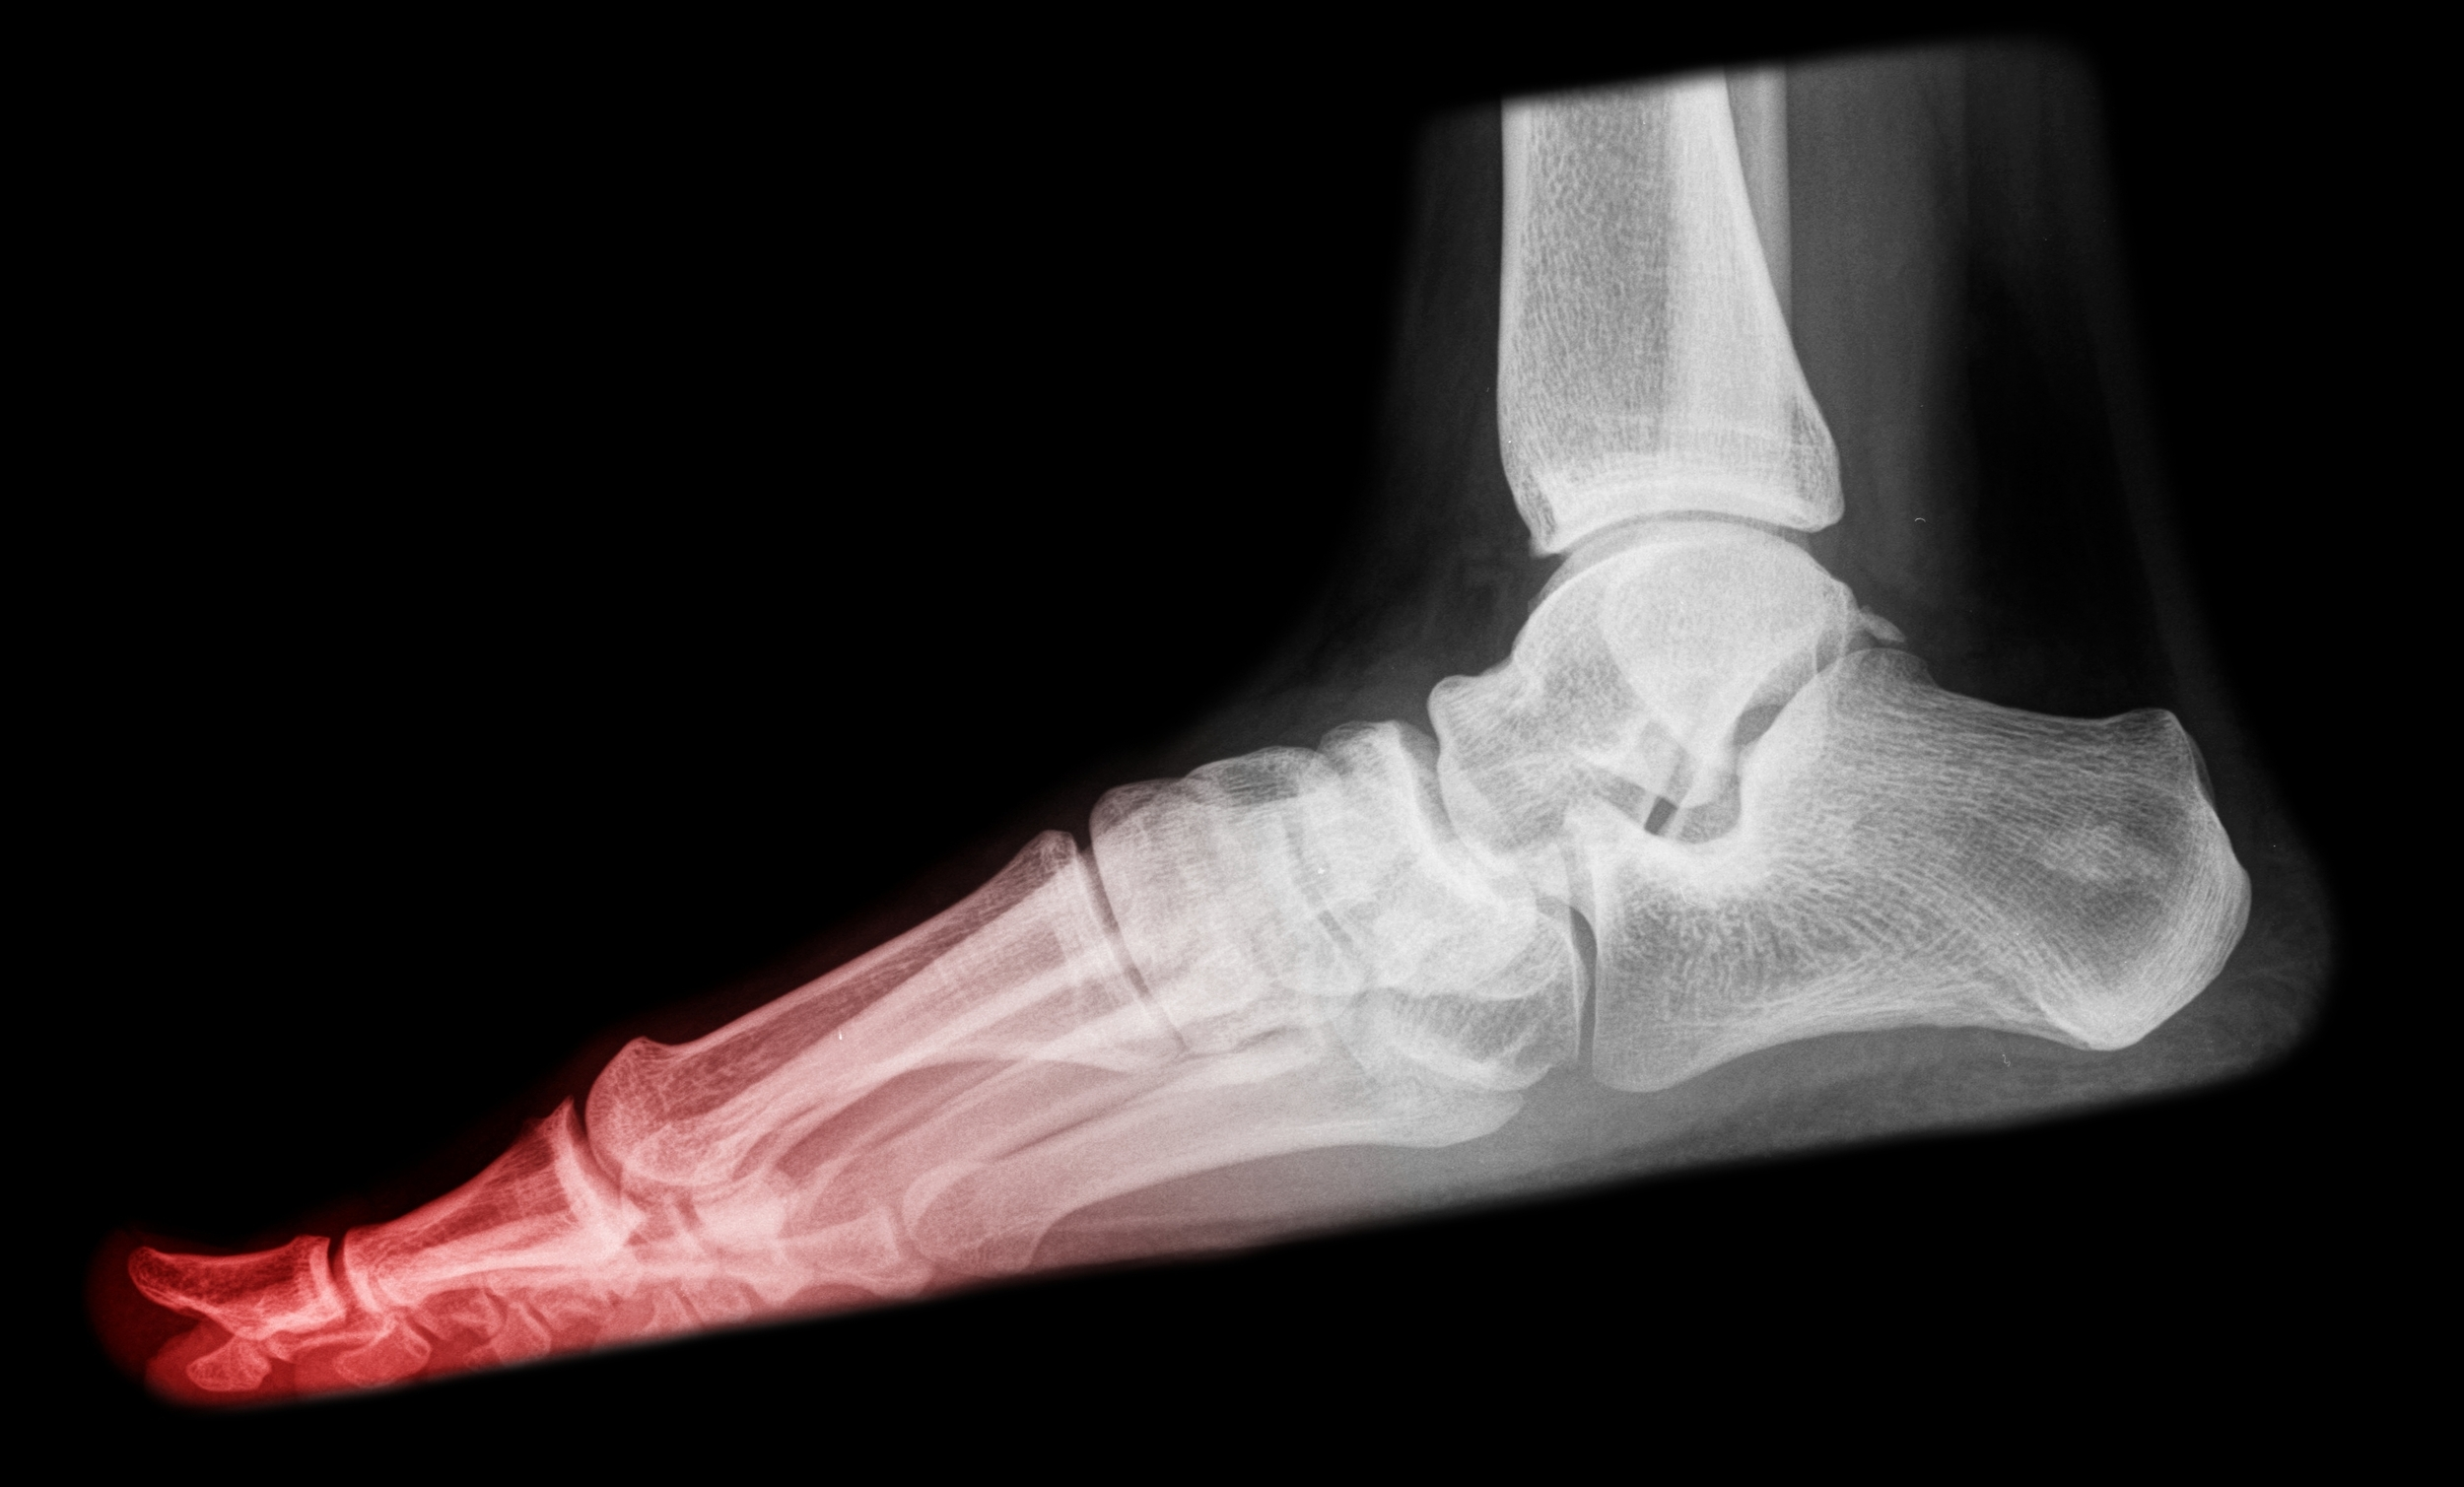 FOOT AND ANKLE SURGERY CLIFTON NJ